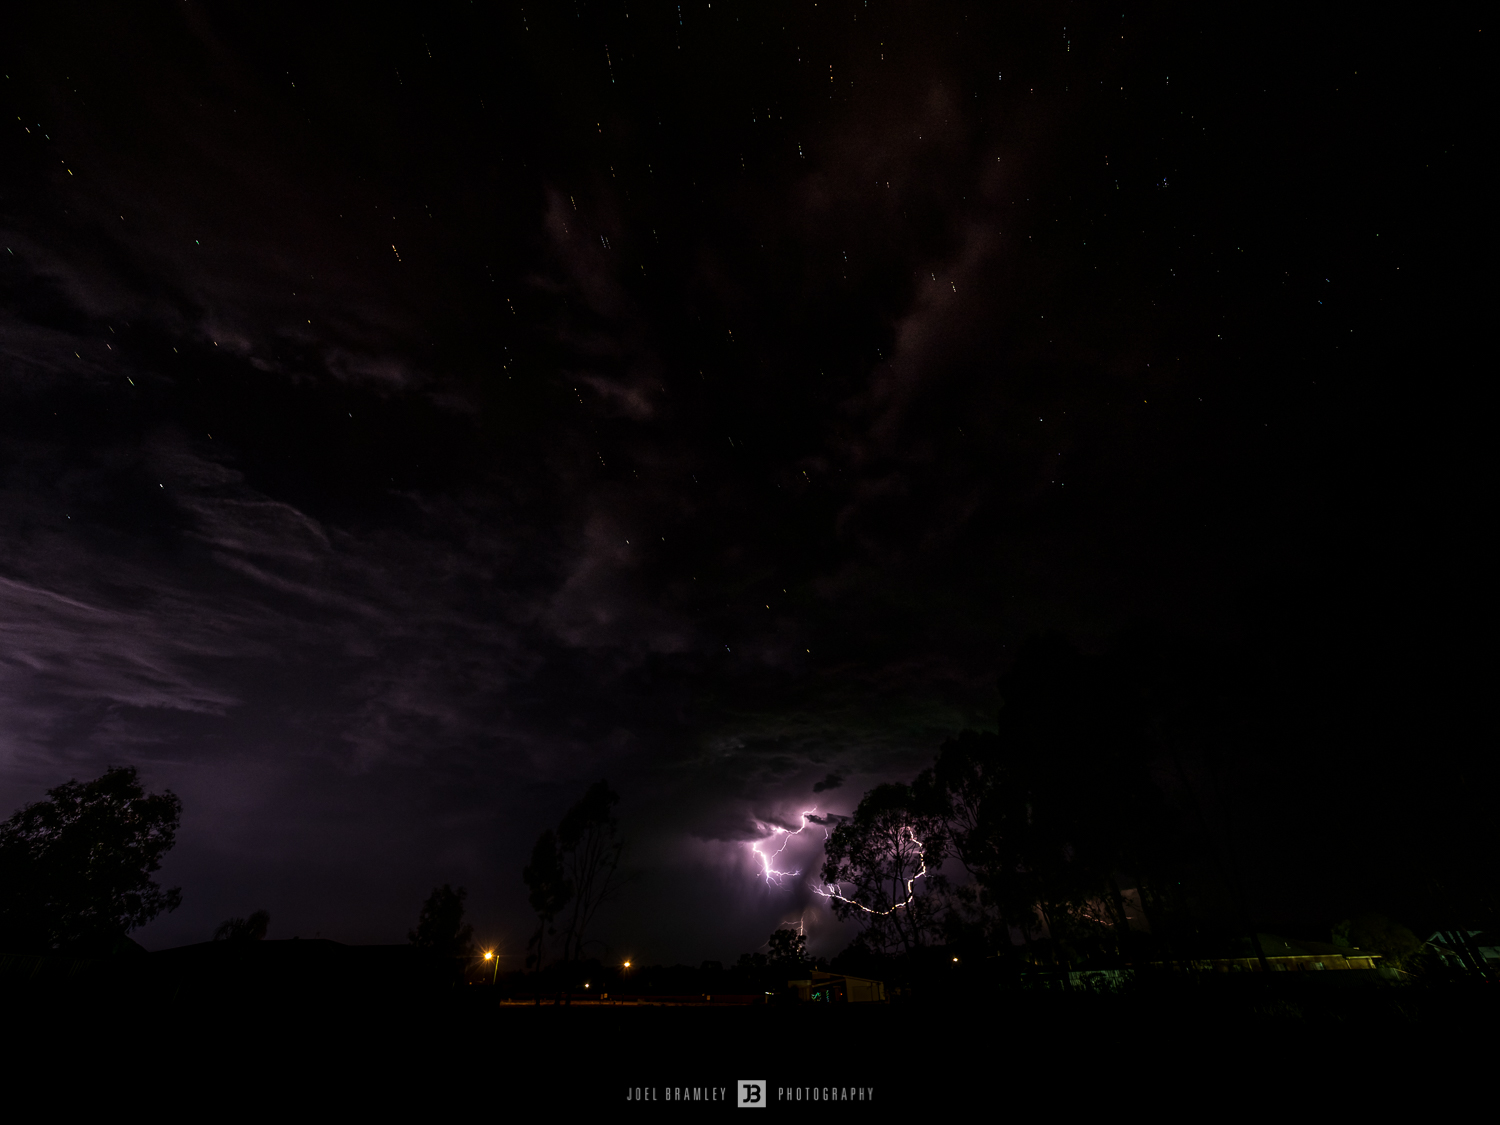 Distant lightning and stars through clouds